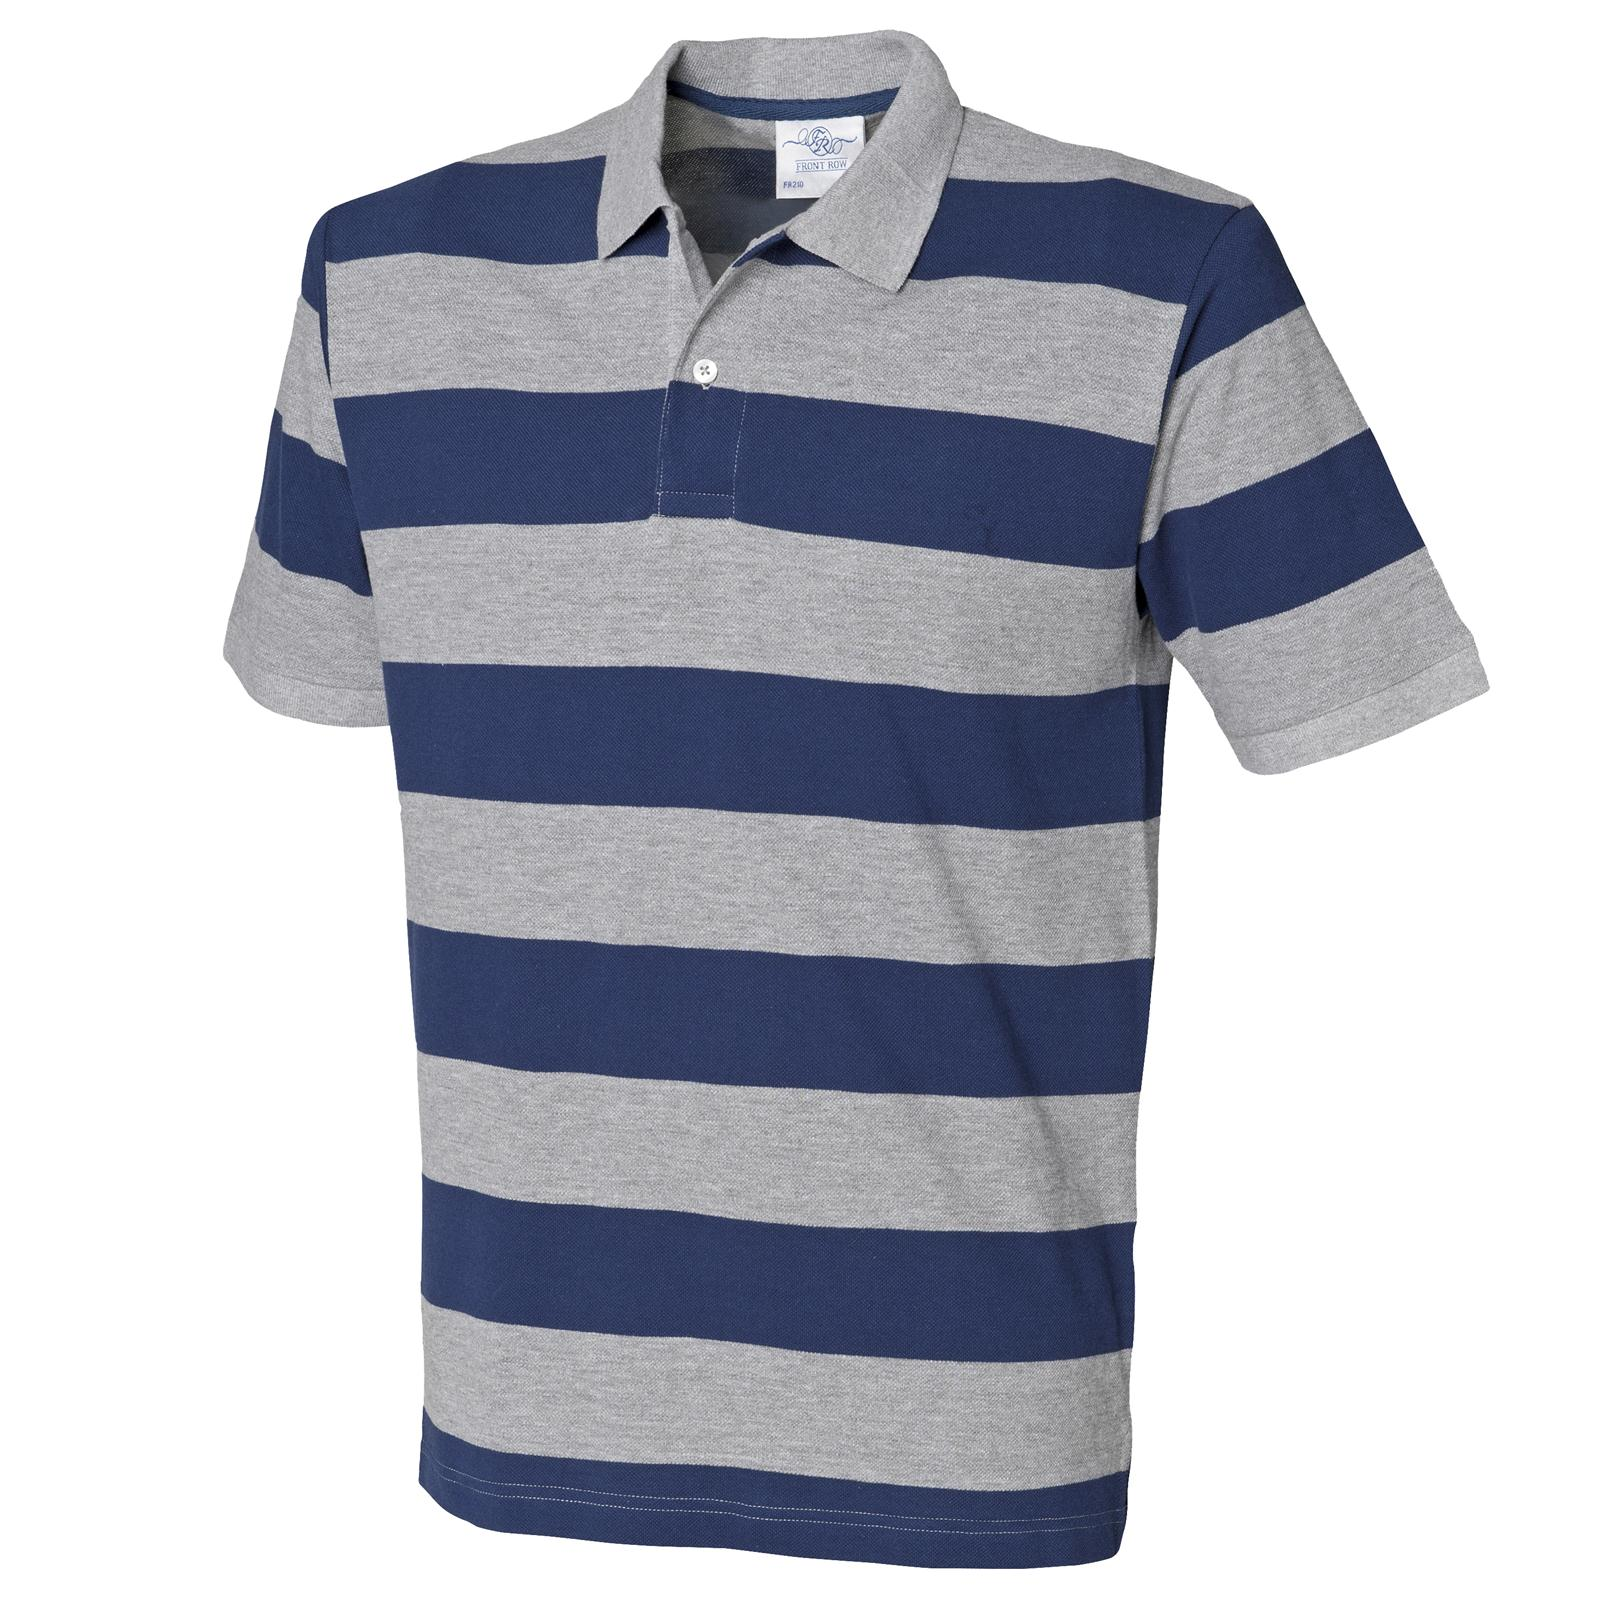 Shop men's polos from Hibbett Sports. Browse our collection polo t-shirts from Nike, Under Armour and more. Get all the latest styles online or in-stores today! - Hibbett Sports.